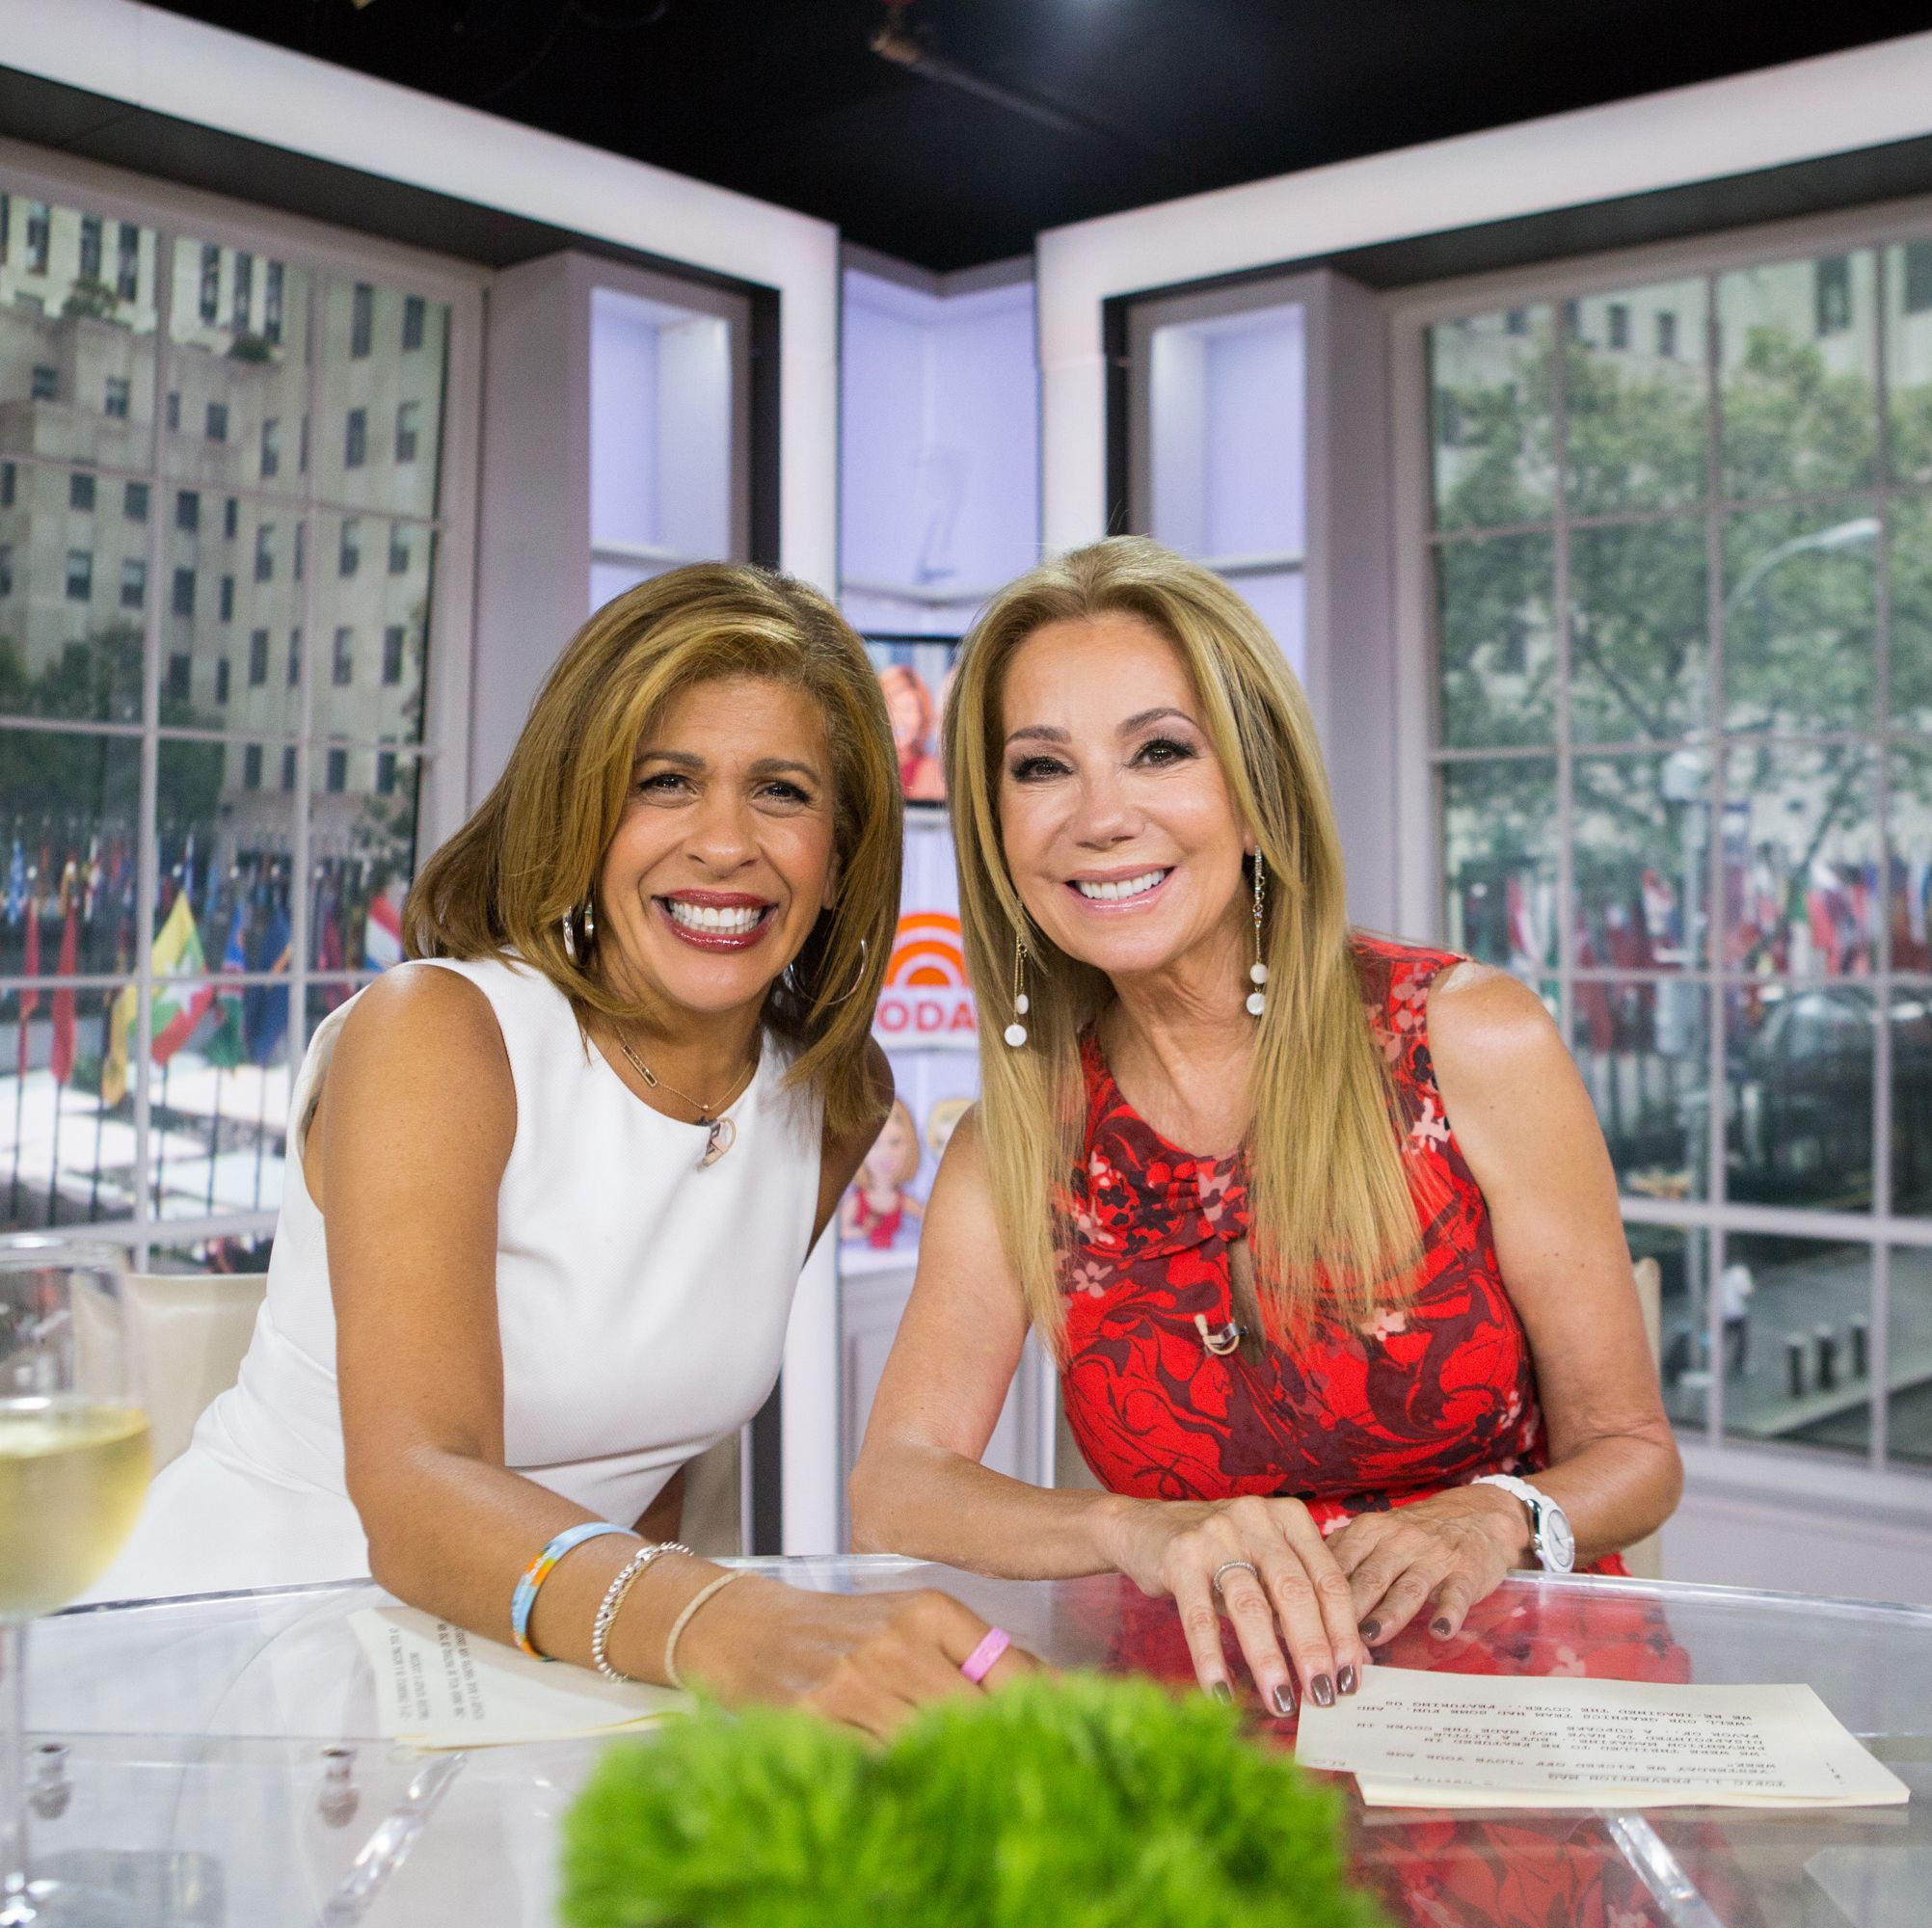 Kathie Lee Gifford Finally Met Hoda Kotb's Baby Daughter and the Photo Is Precious